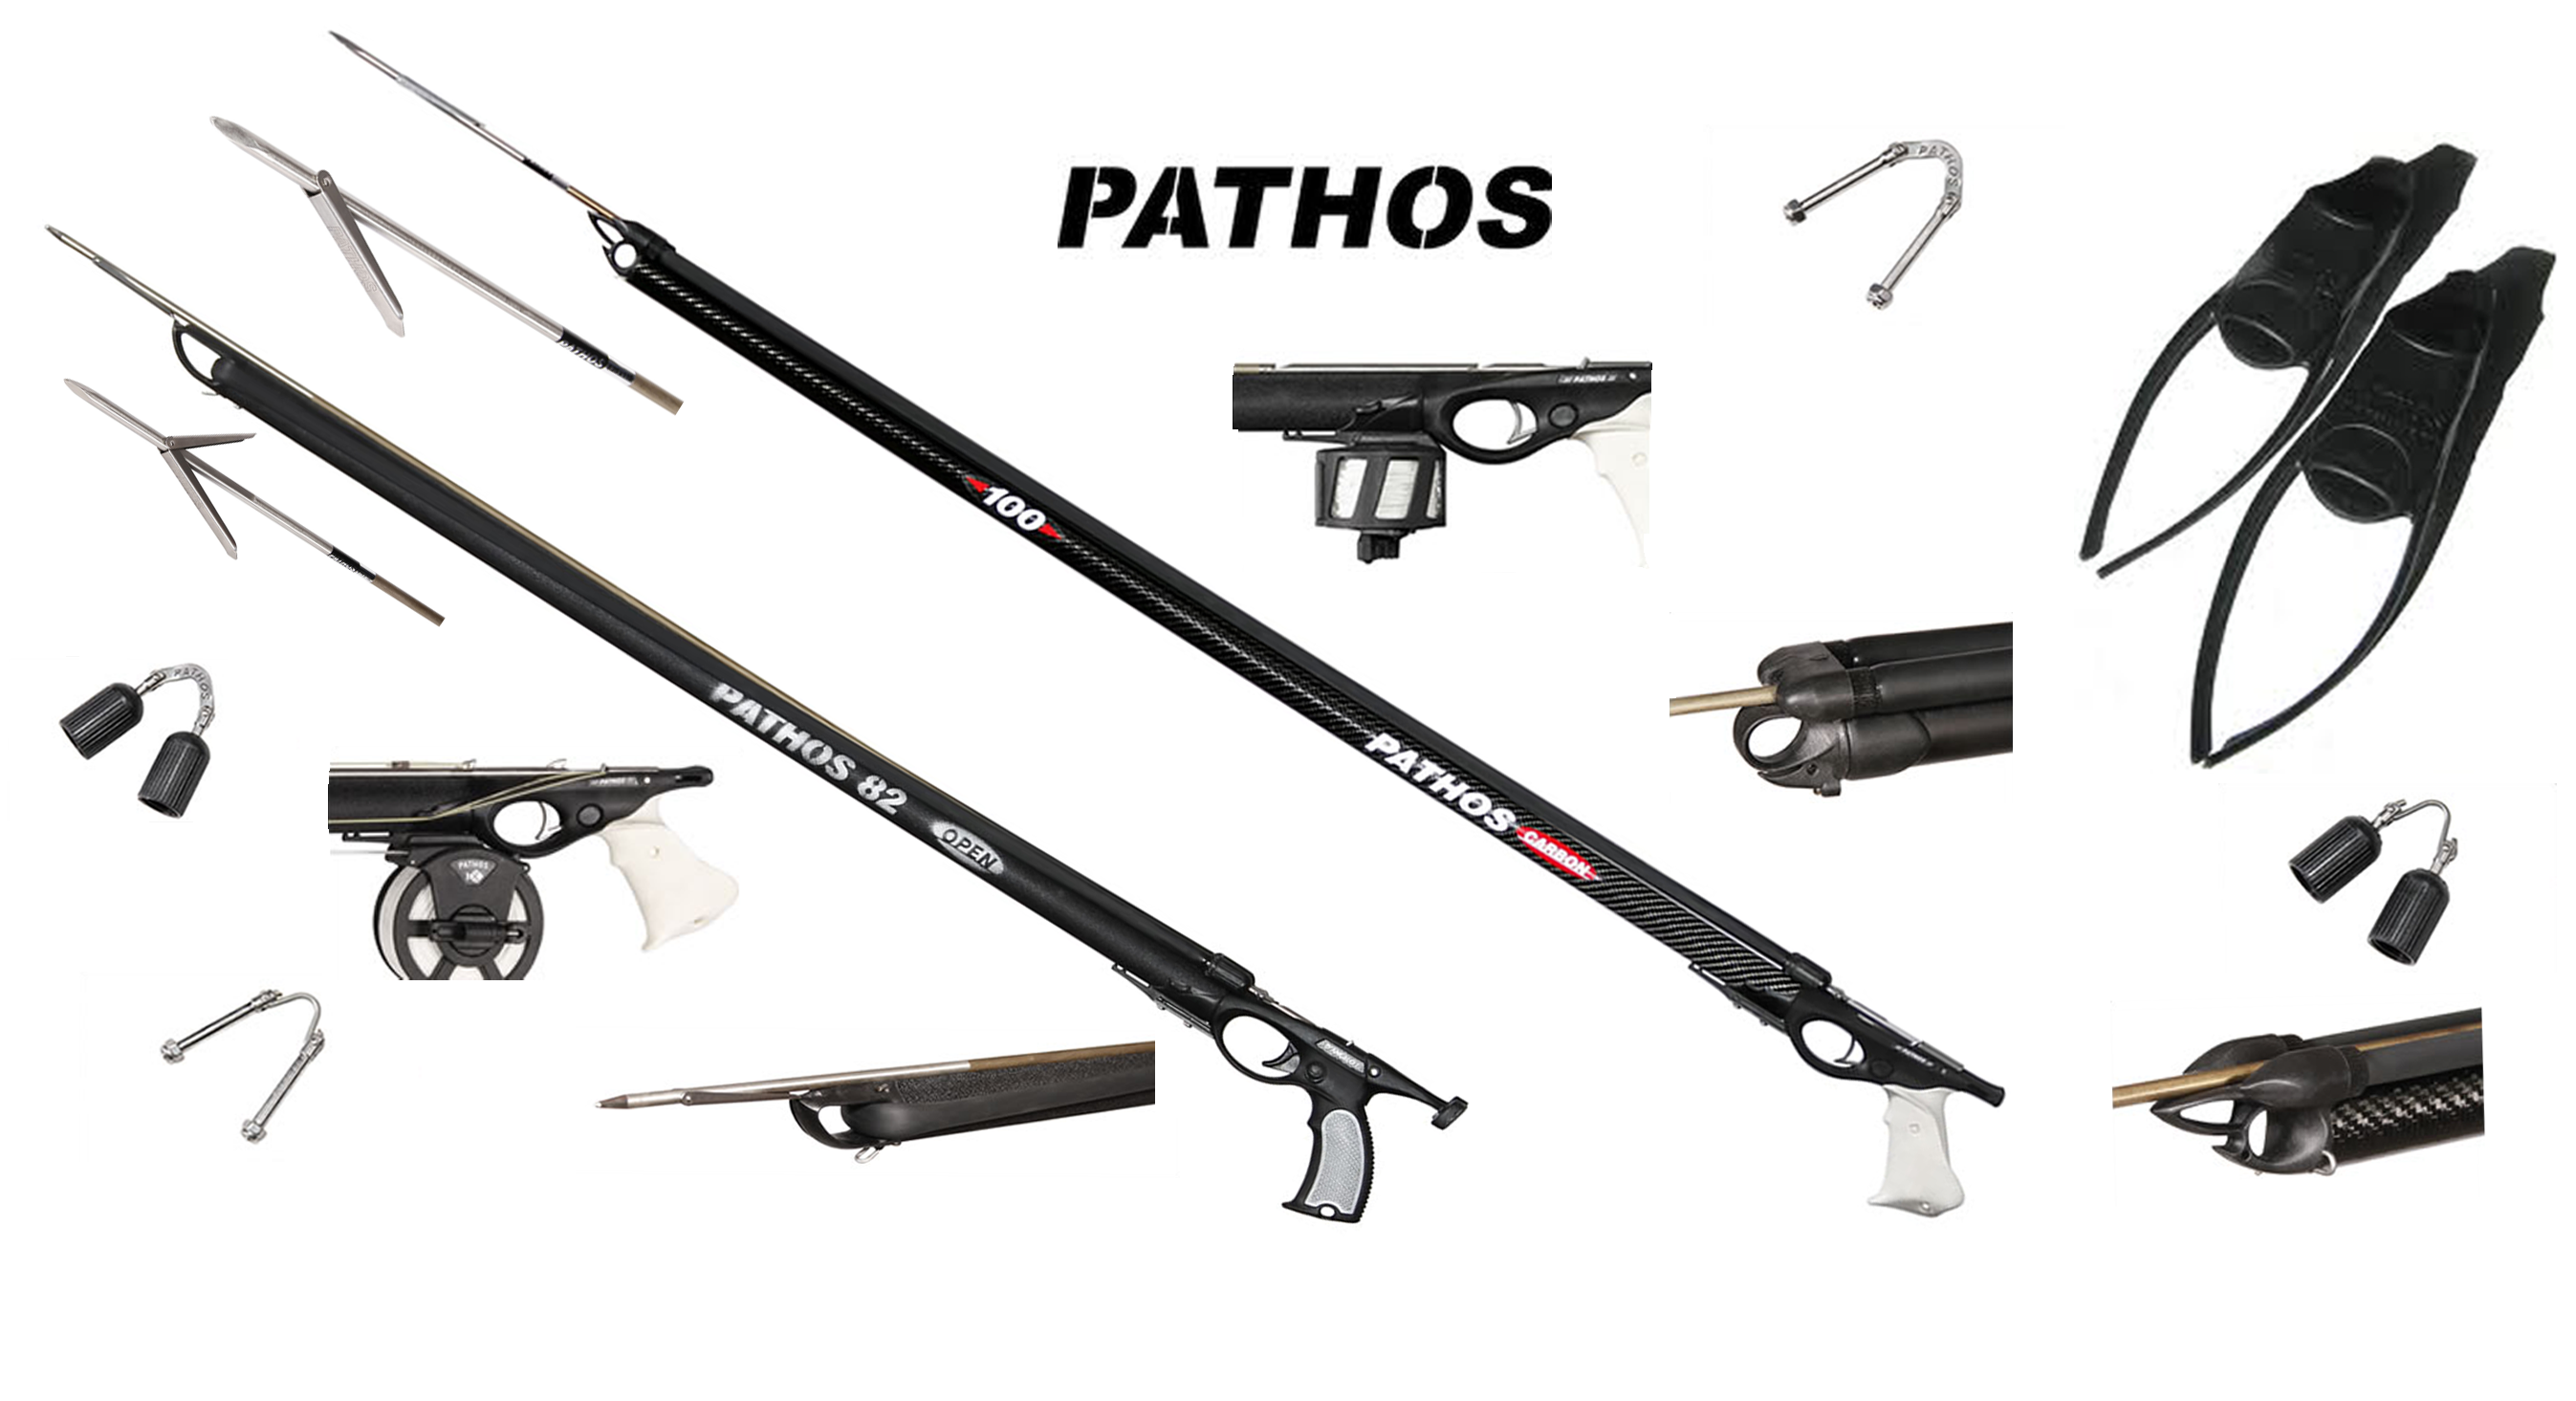 Pathos Spearfishing Guns And Gear Available Now At